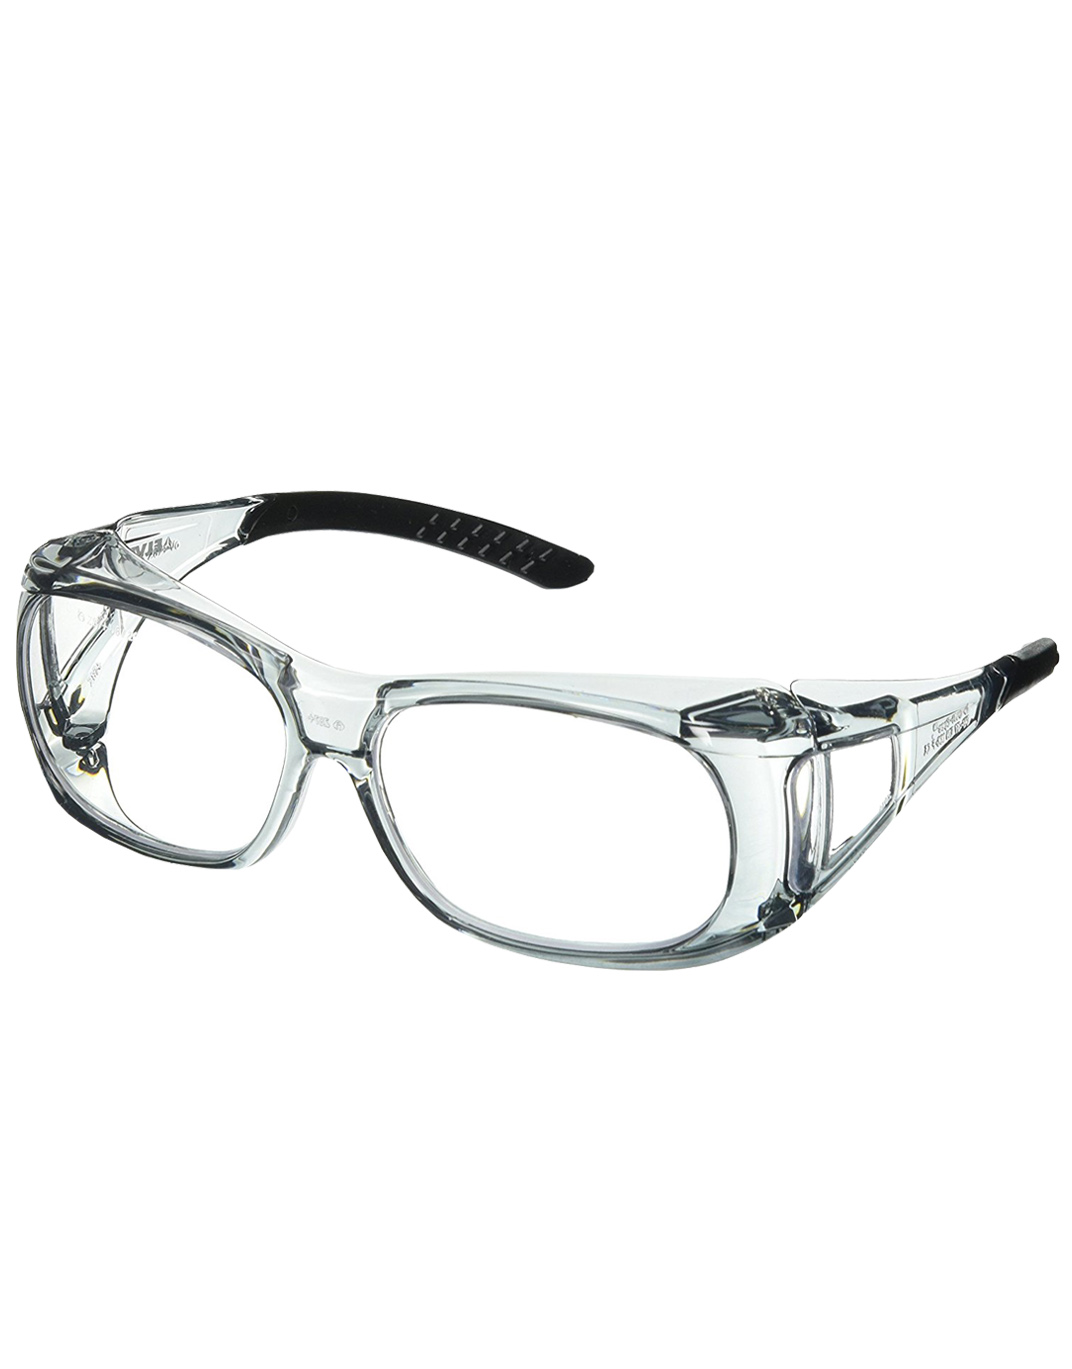 Eye Protection Ovr Spectacle